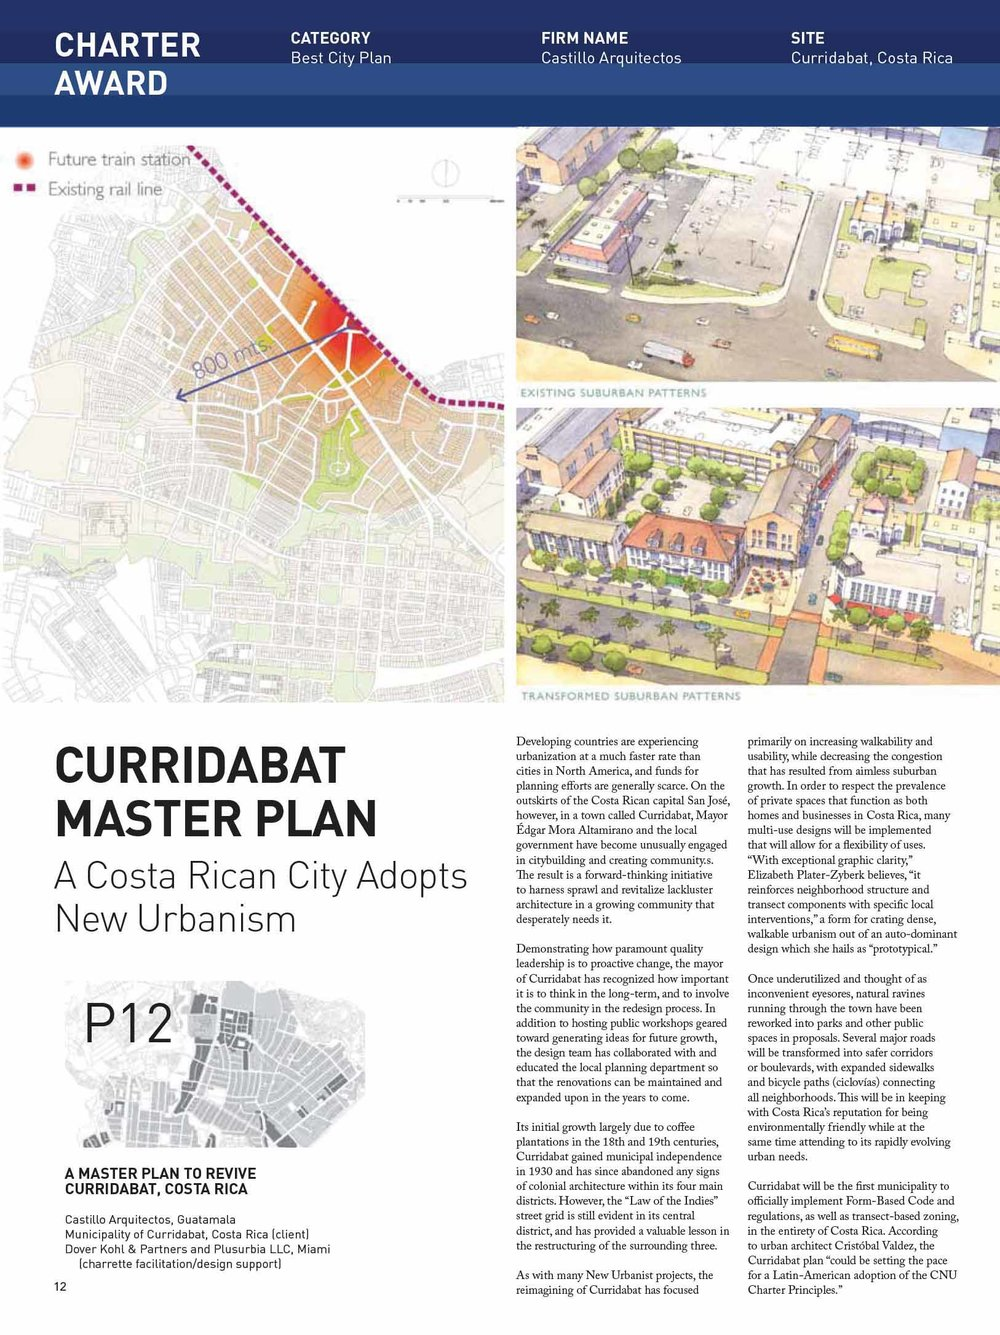 2014-Best City Plan CNU Charter Award- Curridabat Master Plan with Castillo Arquitectos-1.jpg